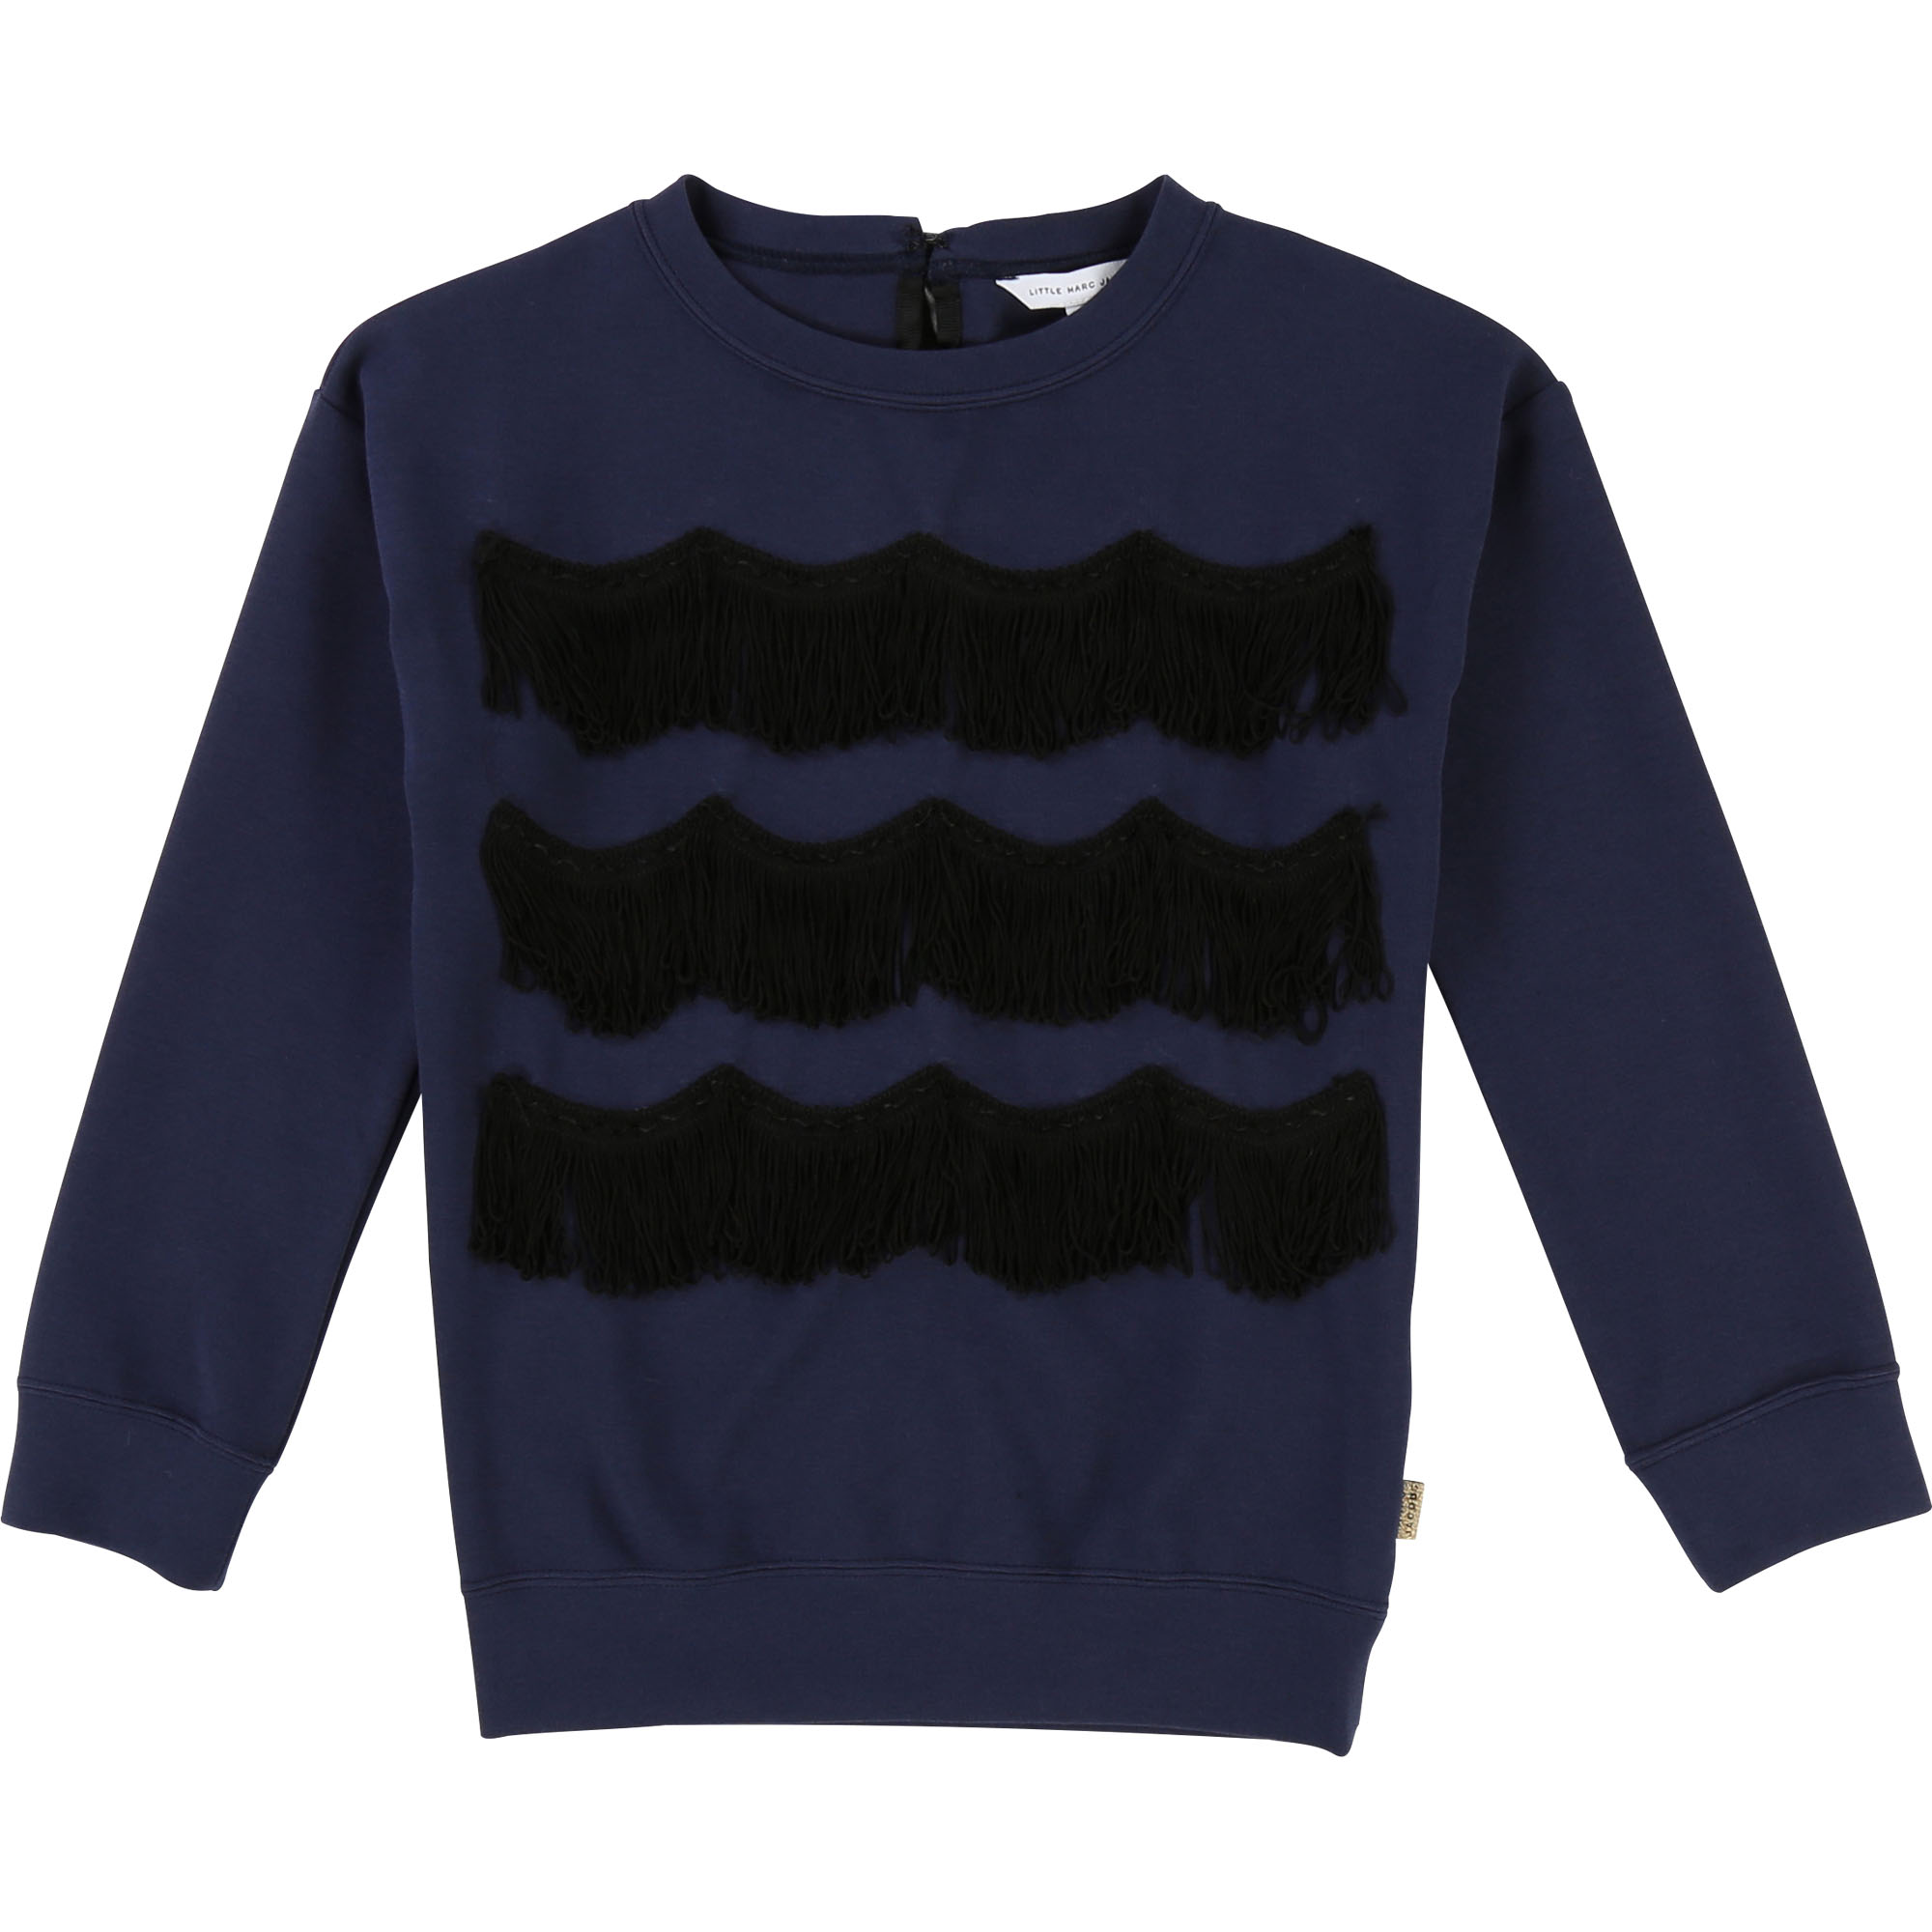 Milano knit fringed sweatshirt LITTLE MARC JACOBS for GIRL